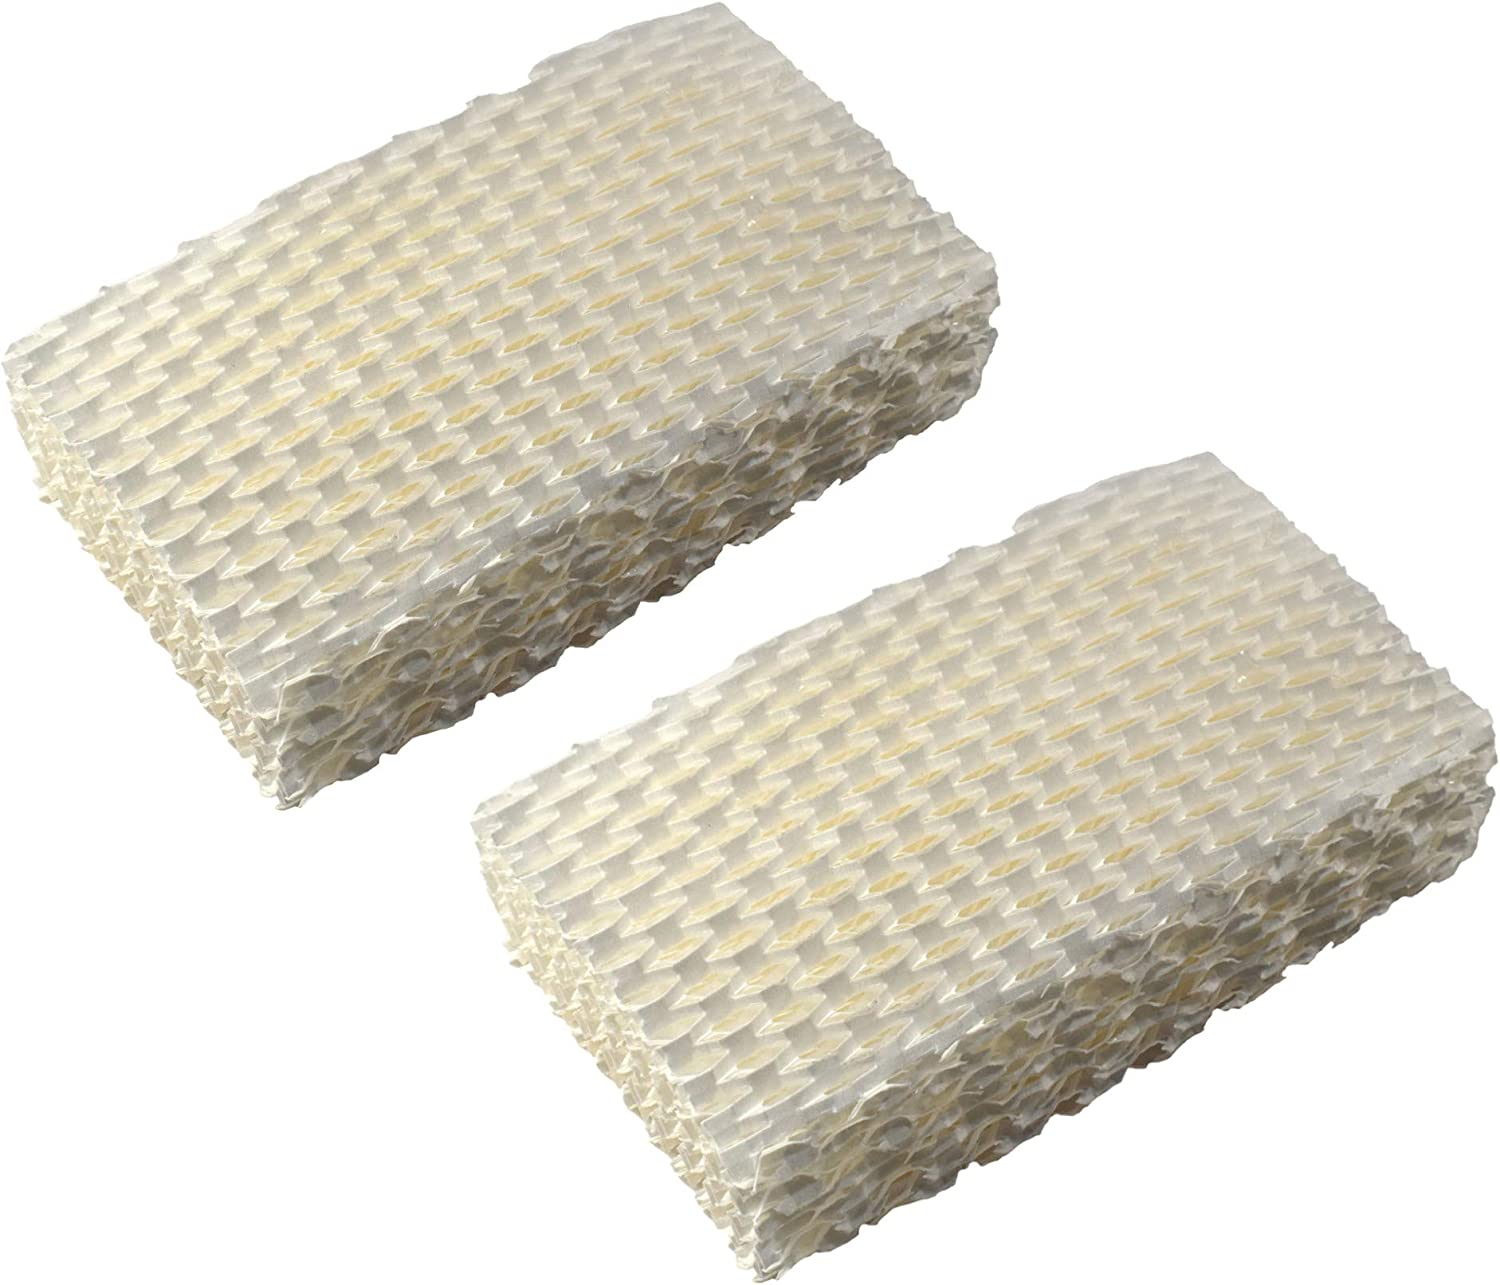 4 Pack TOMOON Humidifier Filter Wicking Filter Compatible with PCWF813 PCWF-813 RCM-832 RCM-832N PCCM-832N PCCM-840-2 Humidifier Filter